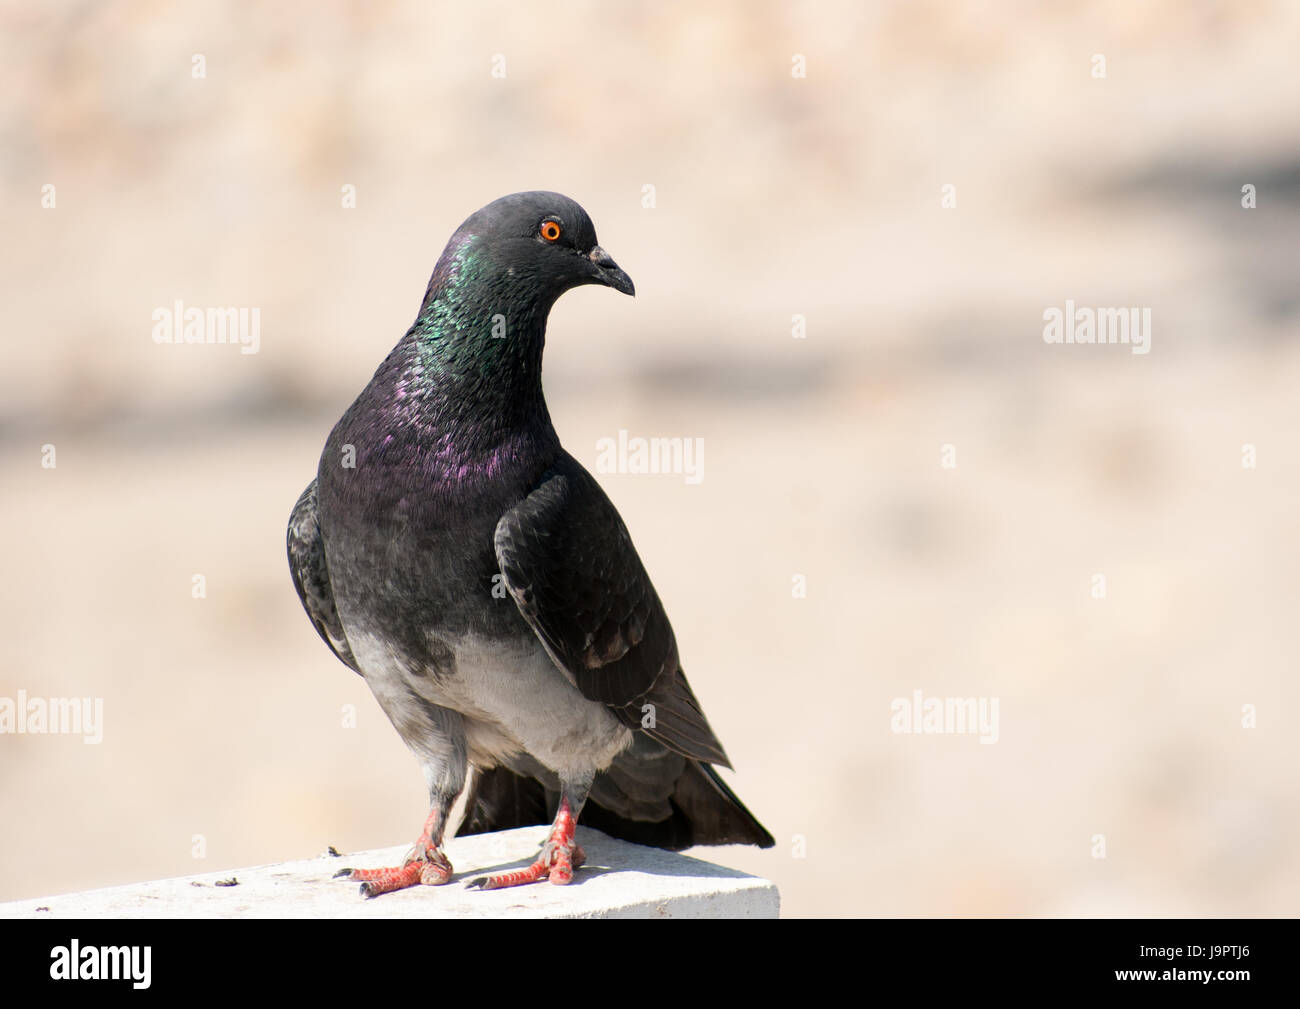 A lone very colorful pigeon sitting on a wood beam close to a beach - Stock Image